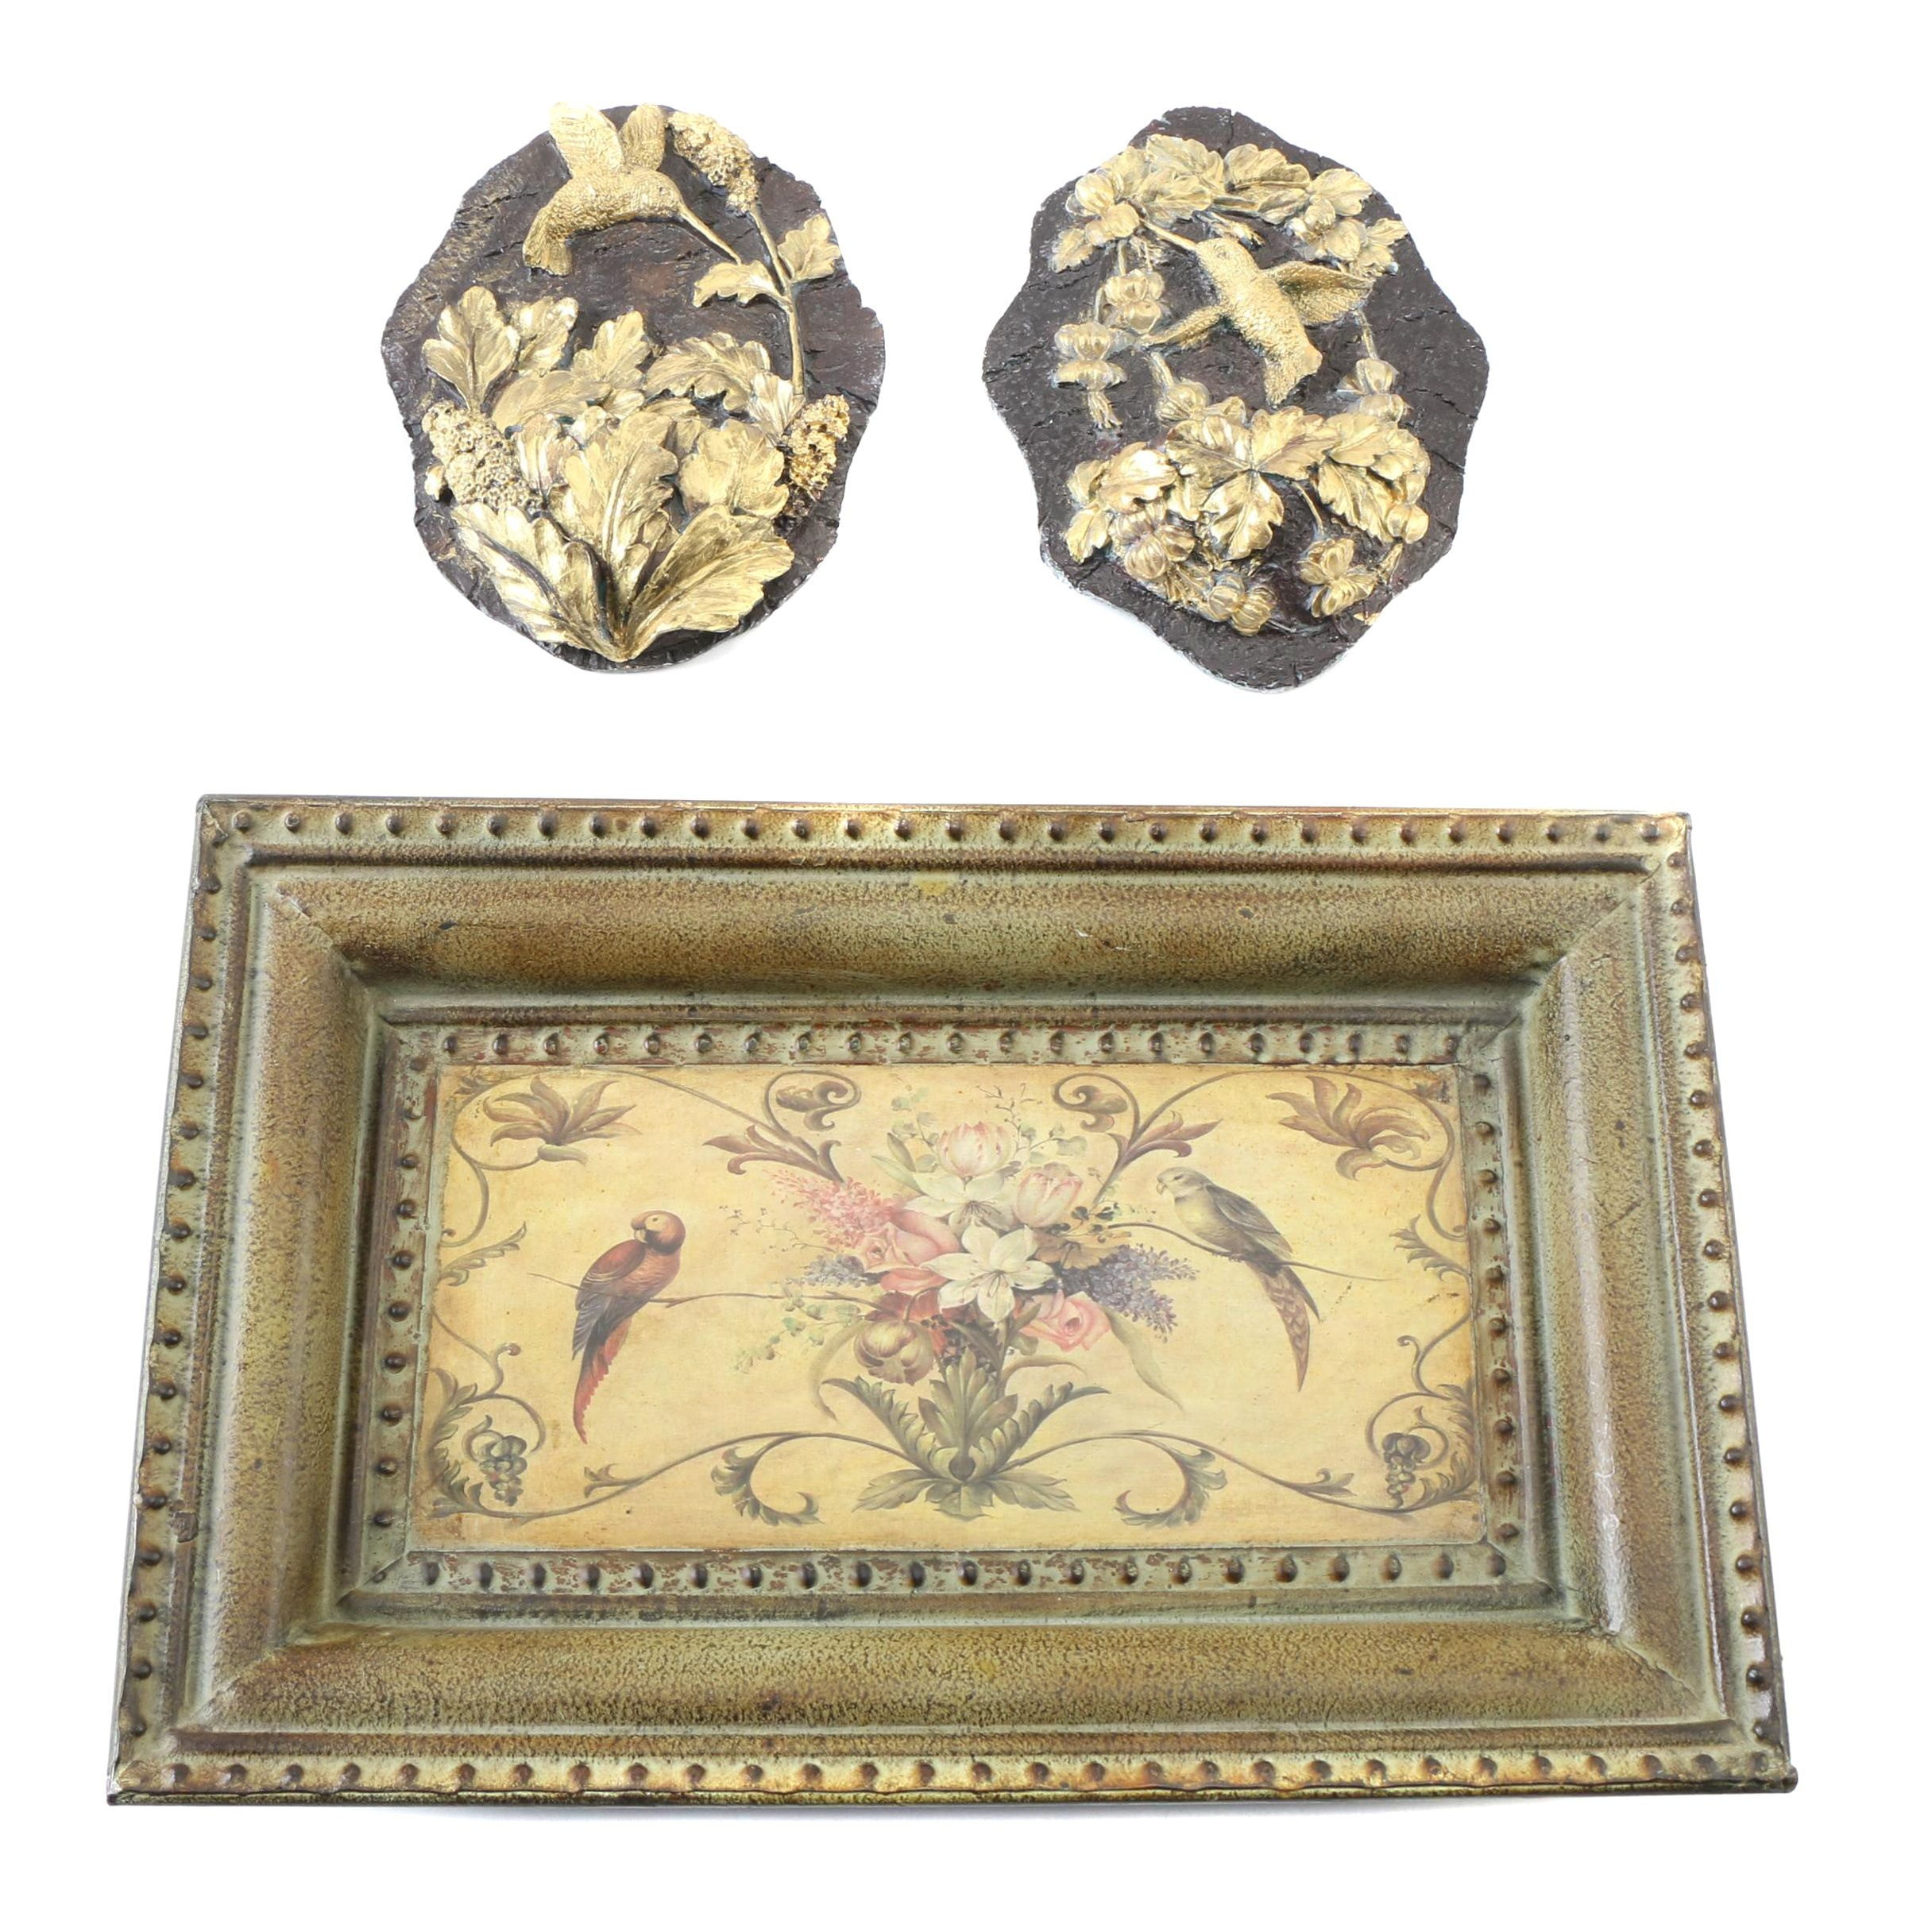 Hummingbird Plaques with a Framed Floral Scene